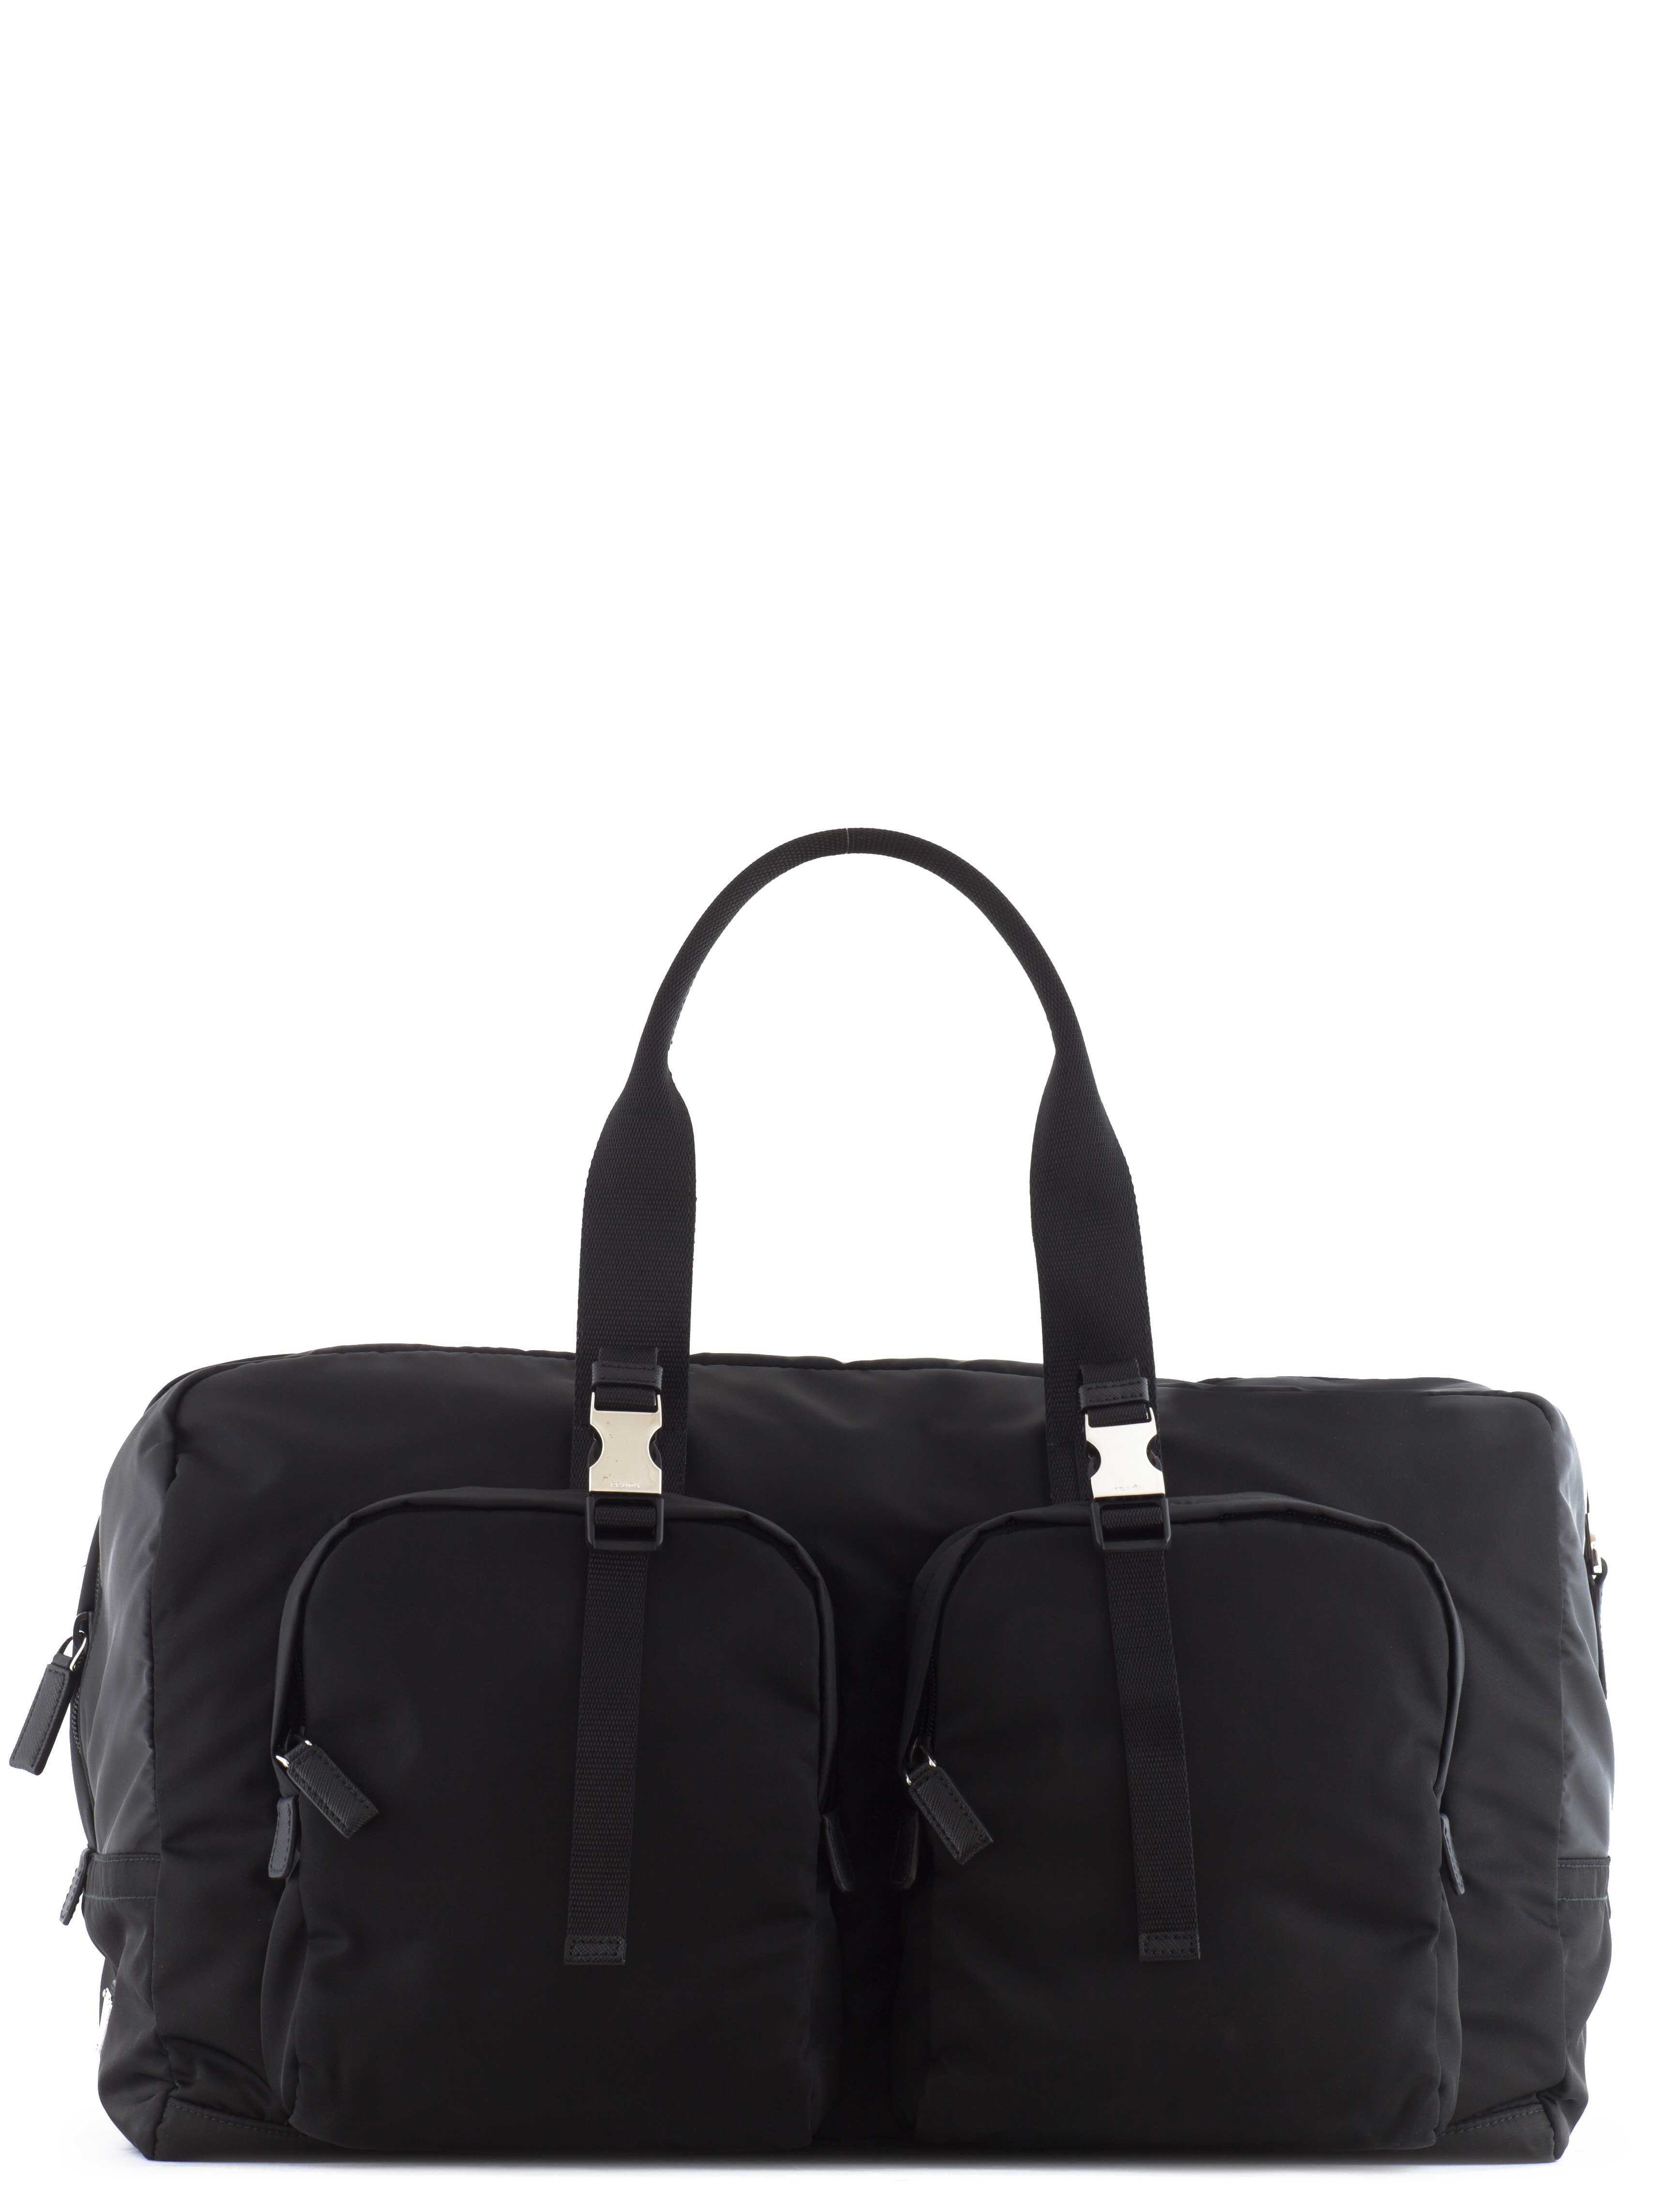 92bb9ffa67f87d Prada Nylon Bags Uk | Stanford Center for Opportunity Policy in ...